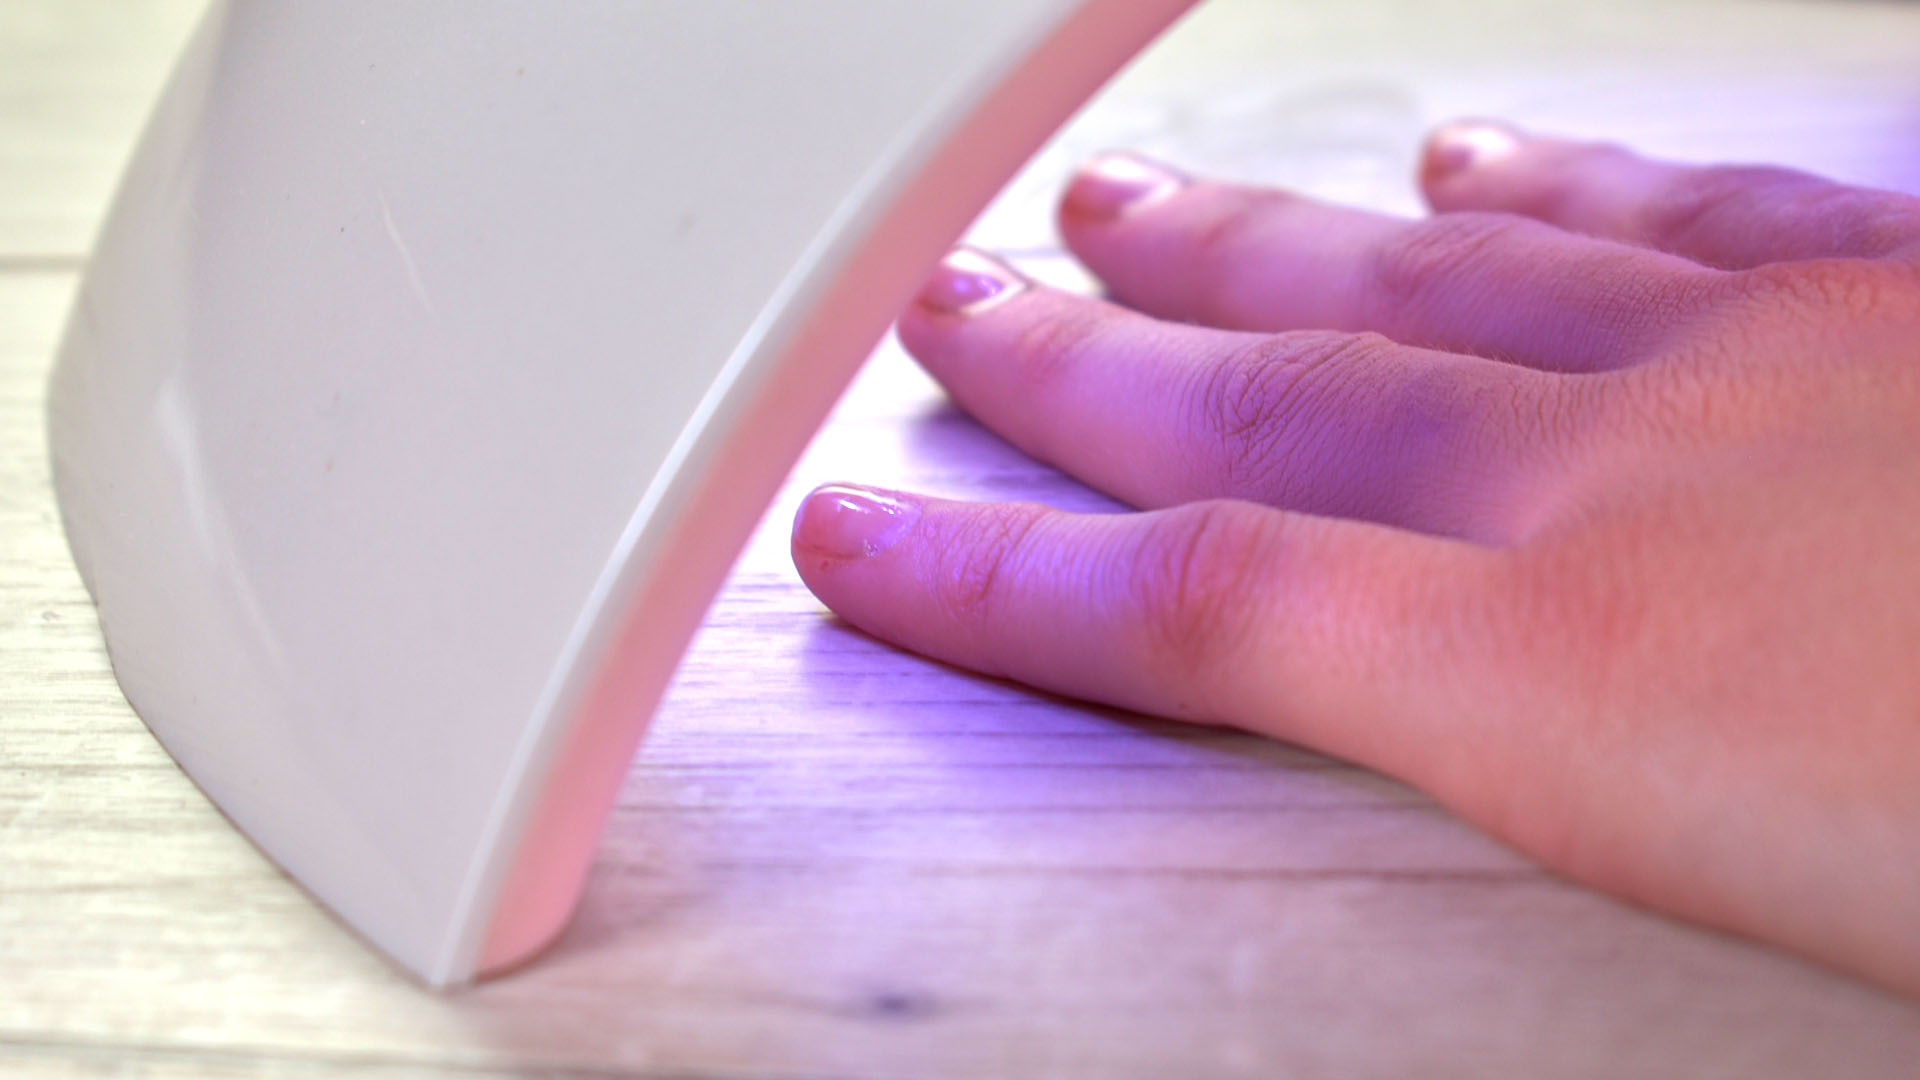 Easy Ways to Dry Gel Nails Without an Led Lamp (with Pictures)